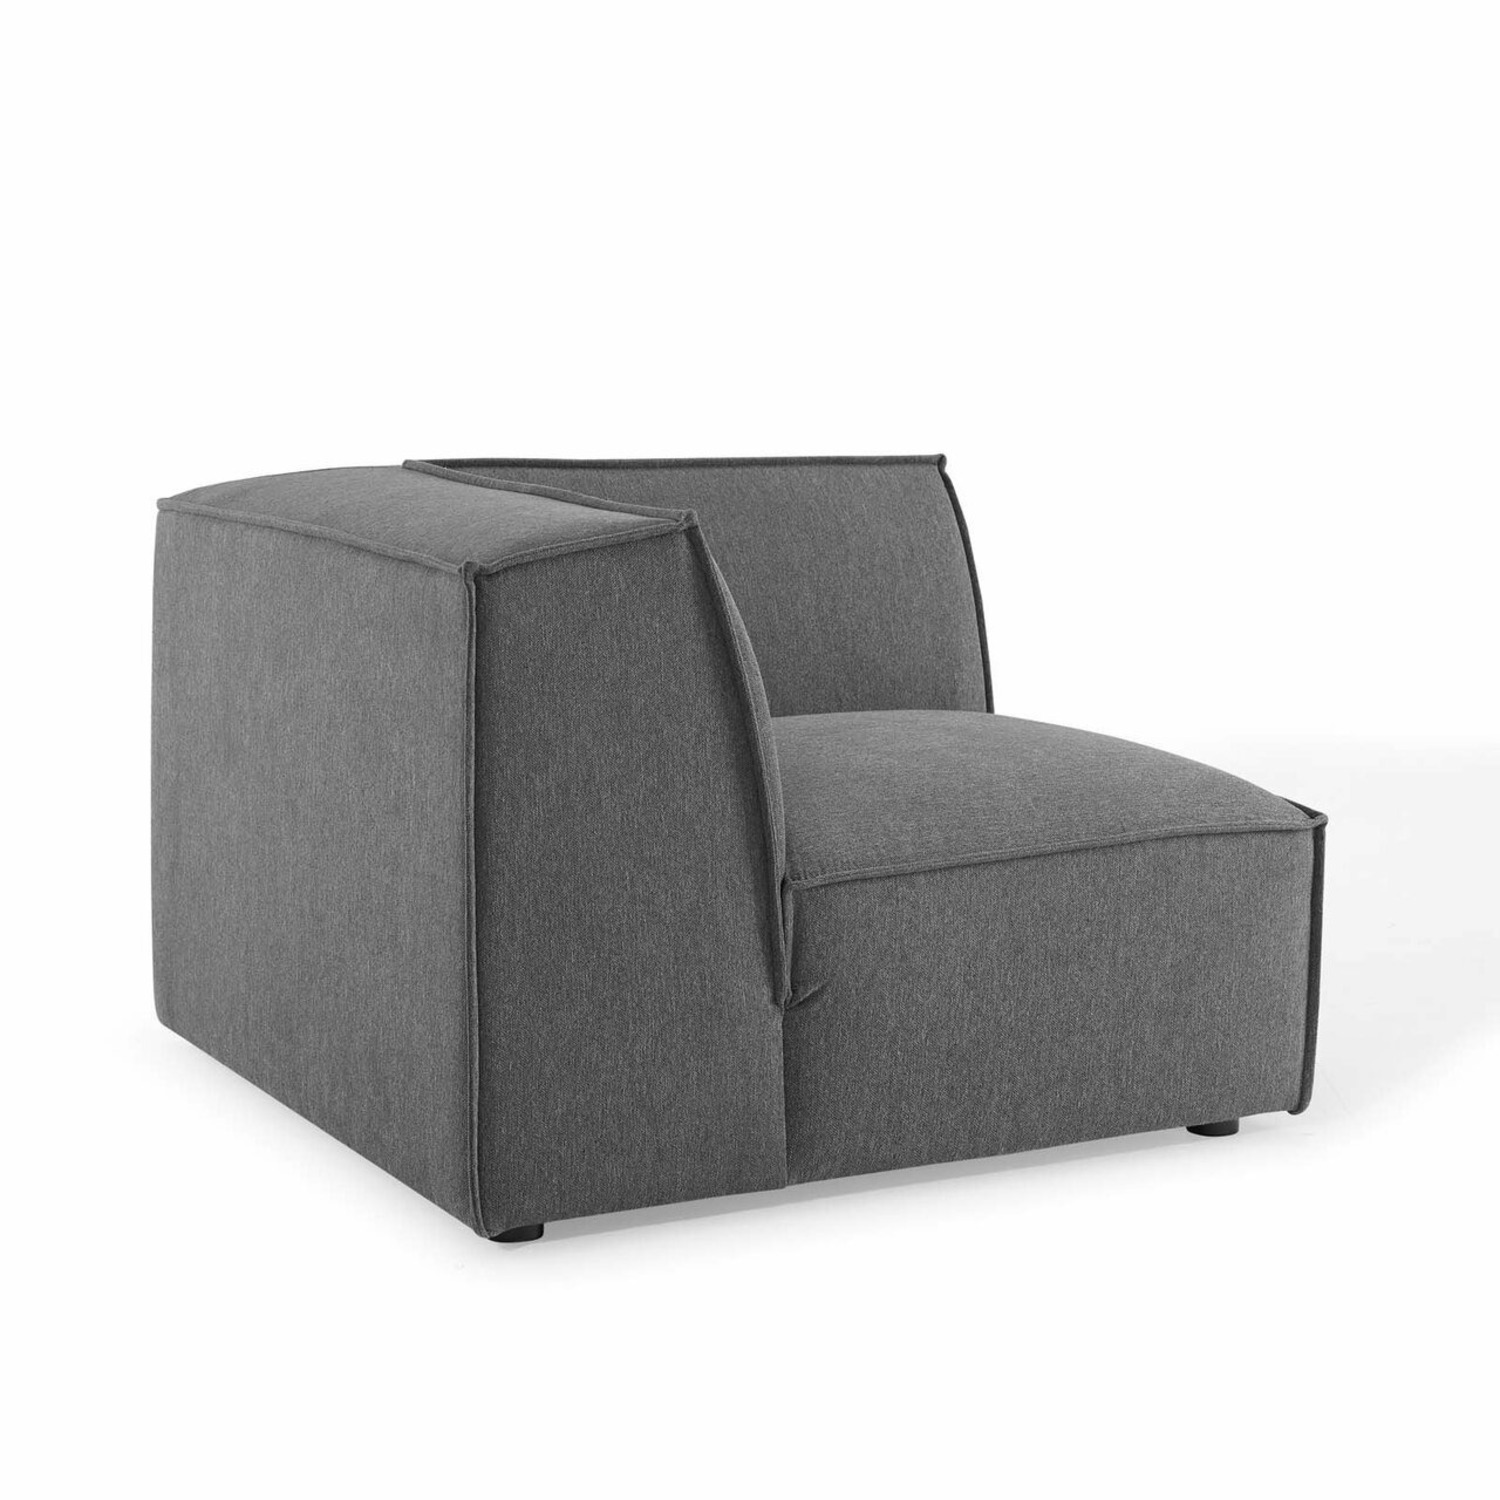 6-Piece Sectional Sofa In Charcoal Fabric - image-6